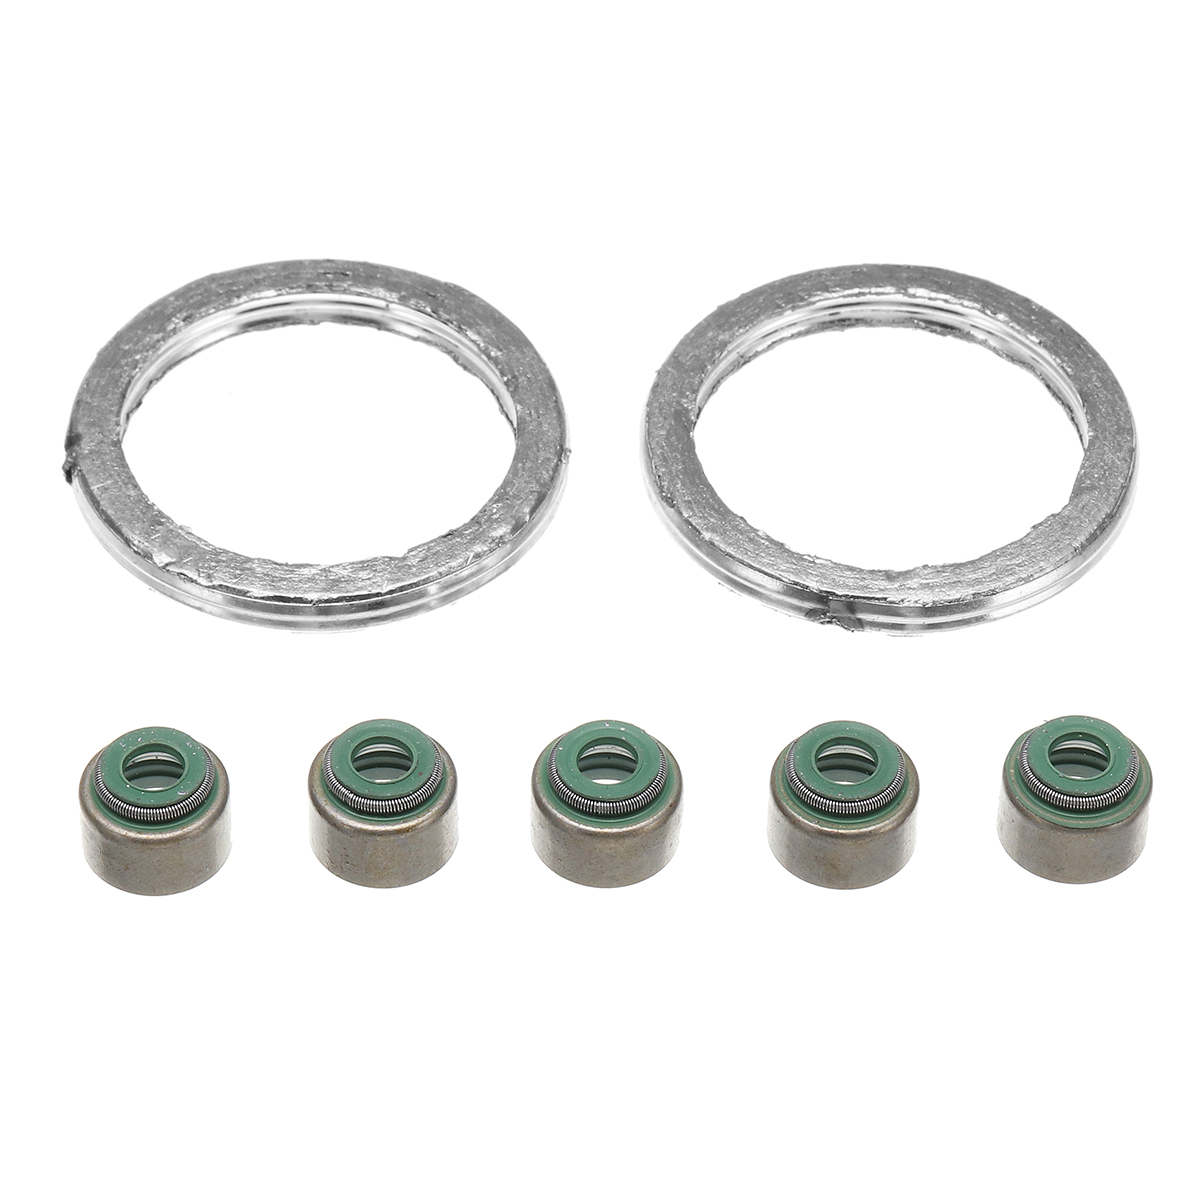 Top End Clutch Cylinder Full Engine Gasket Kit For YAMAHA GRIZZLY 600 1998-2001